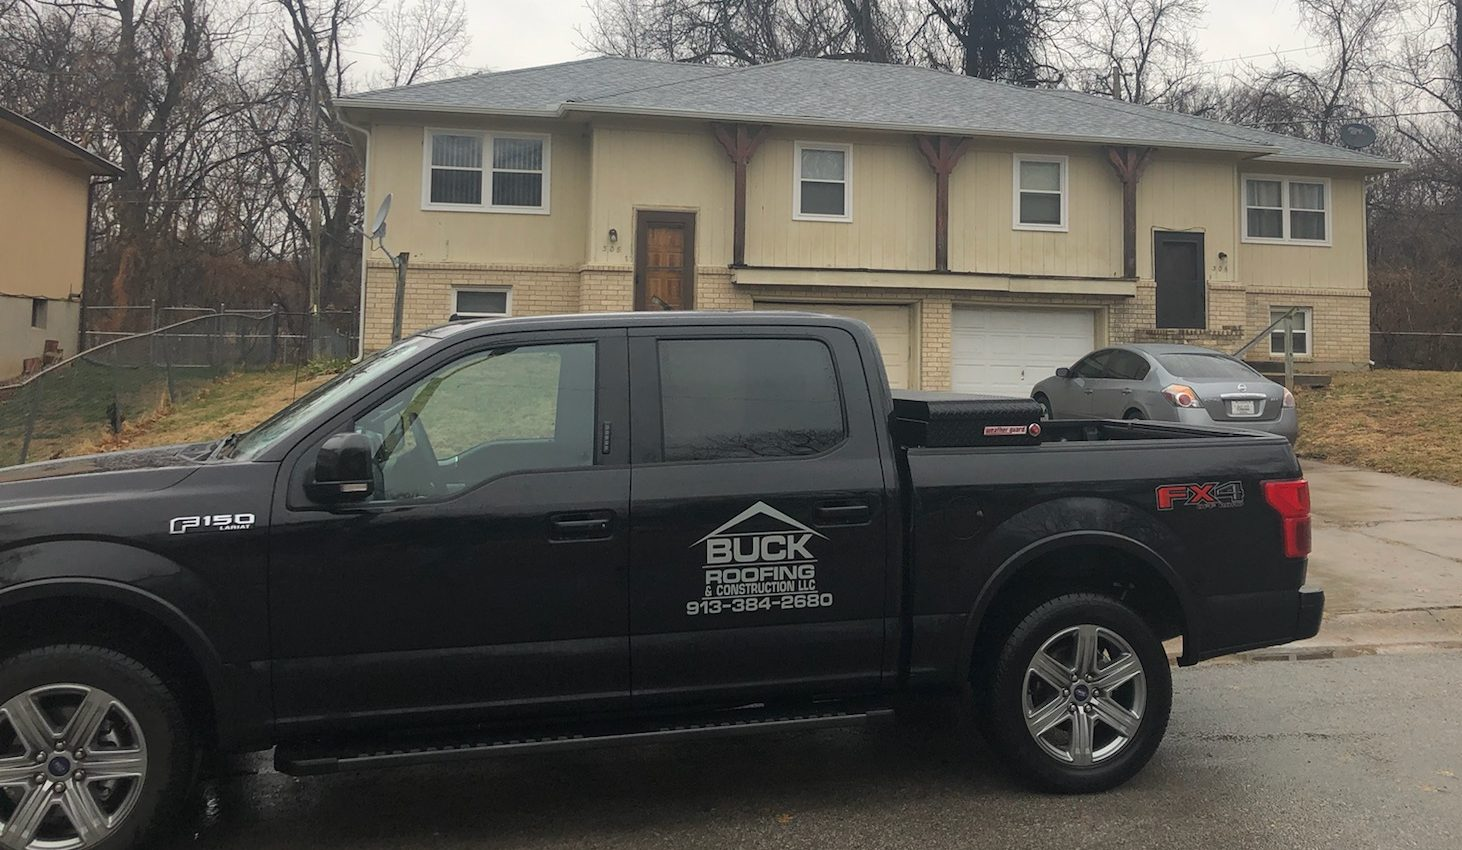 Buck Roofing - Residential Roofing Company - Kansas and Missouri - Certainteed Landmark - Birchwood